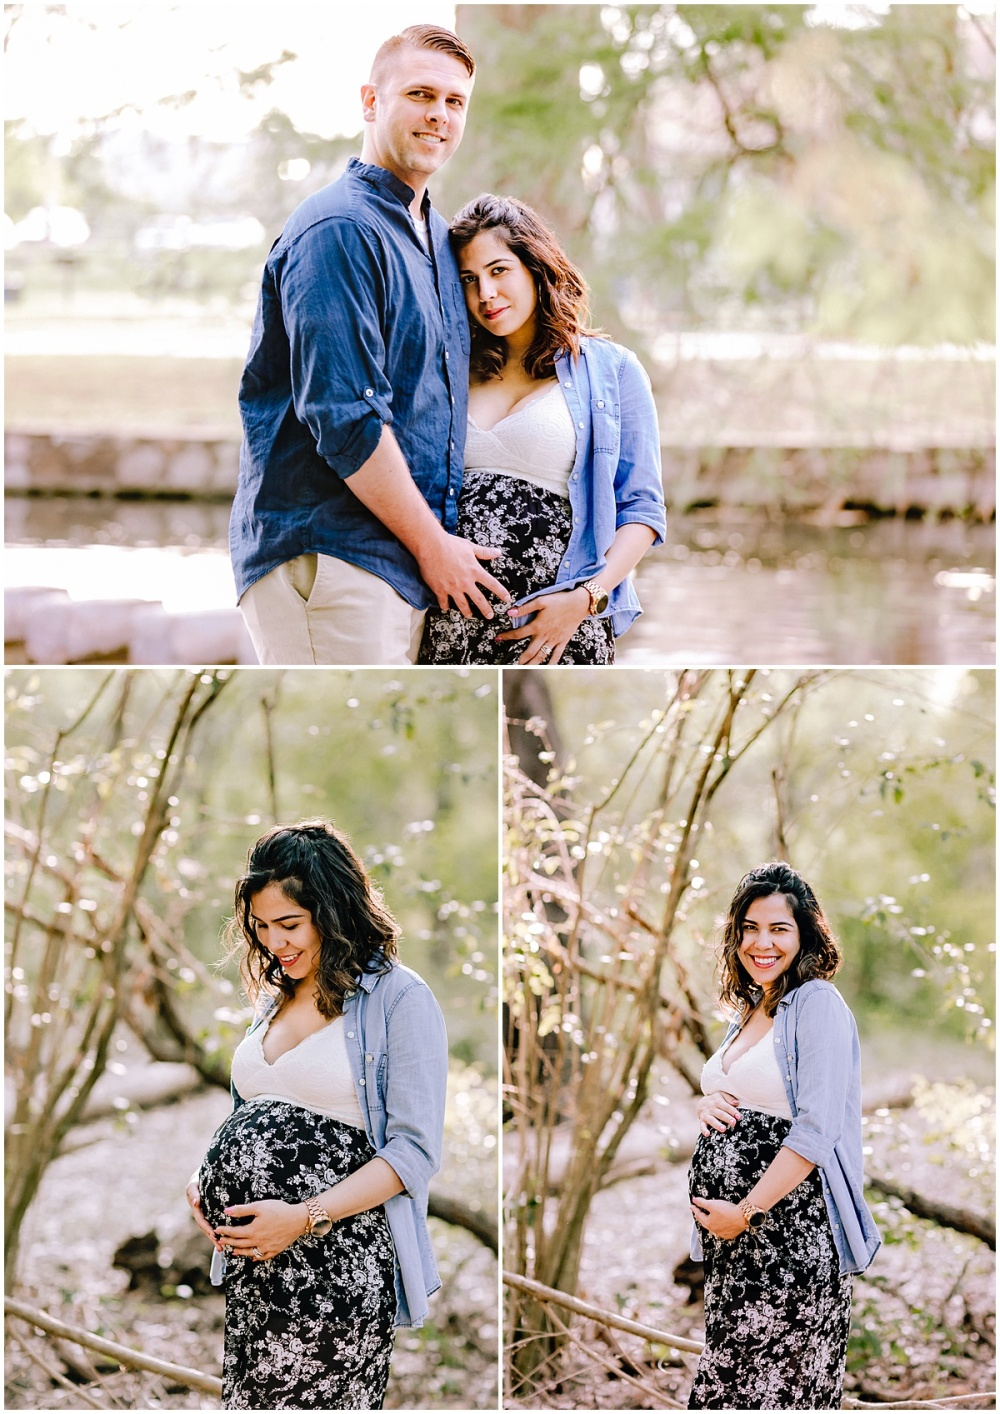 Maternity-Photo-Session-Brakenridge-Park-San-Antonio-Texas-Carly-Barton-Photography_0003.jpg